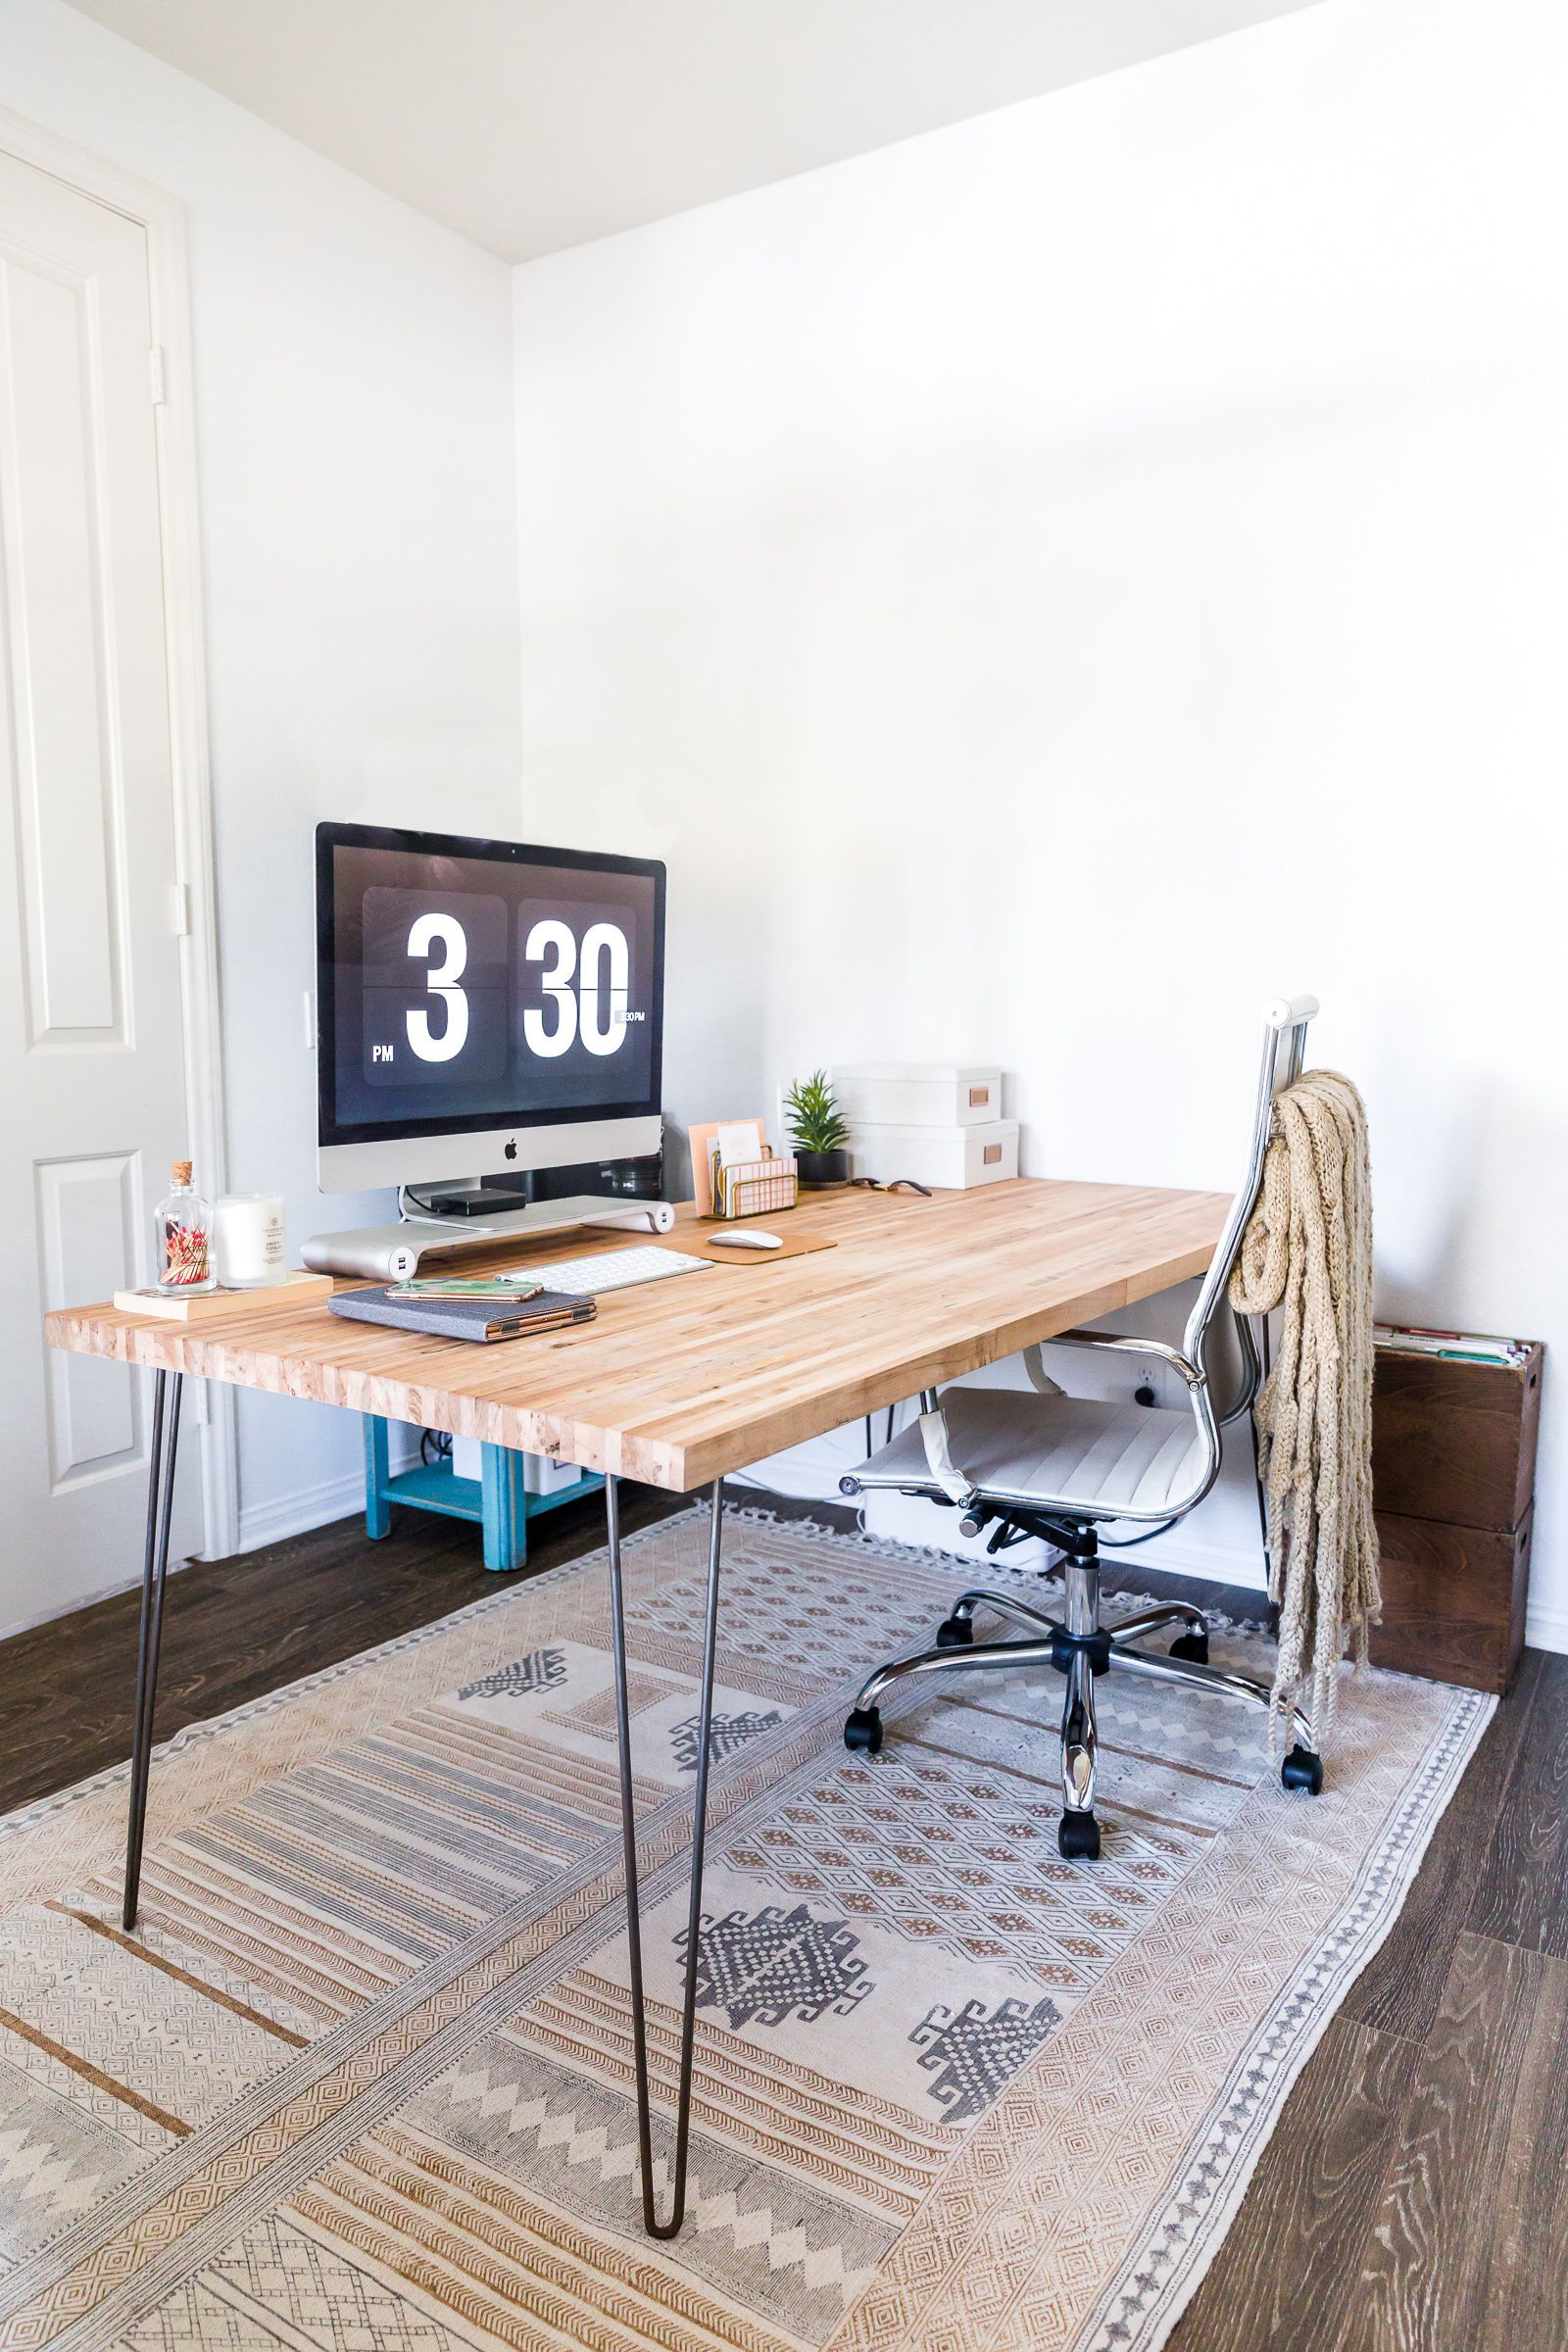 These Diy Desk Plans Will Make You Want To Get Right To Work